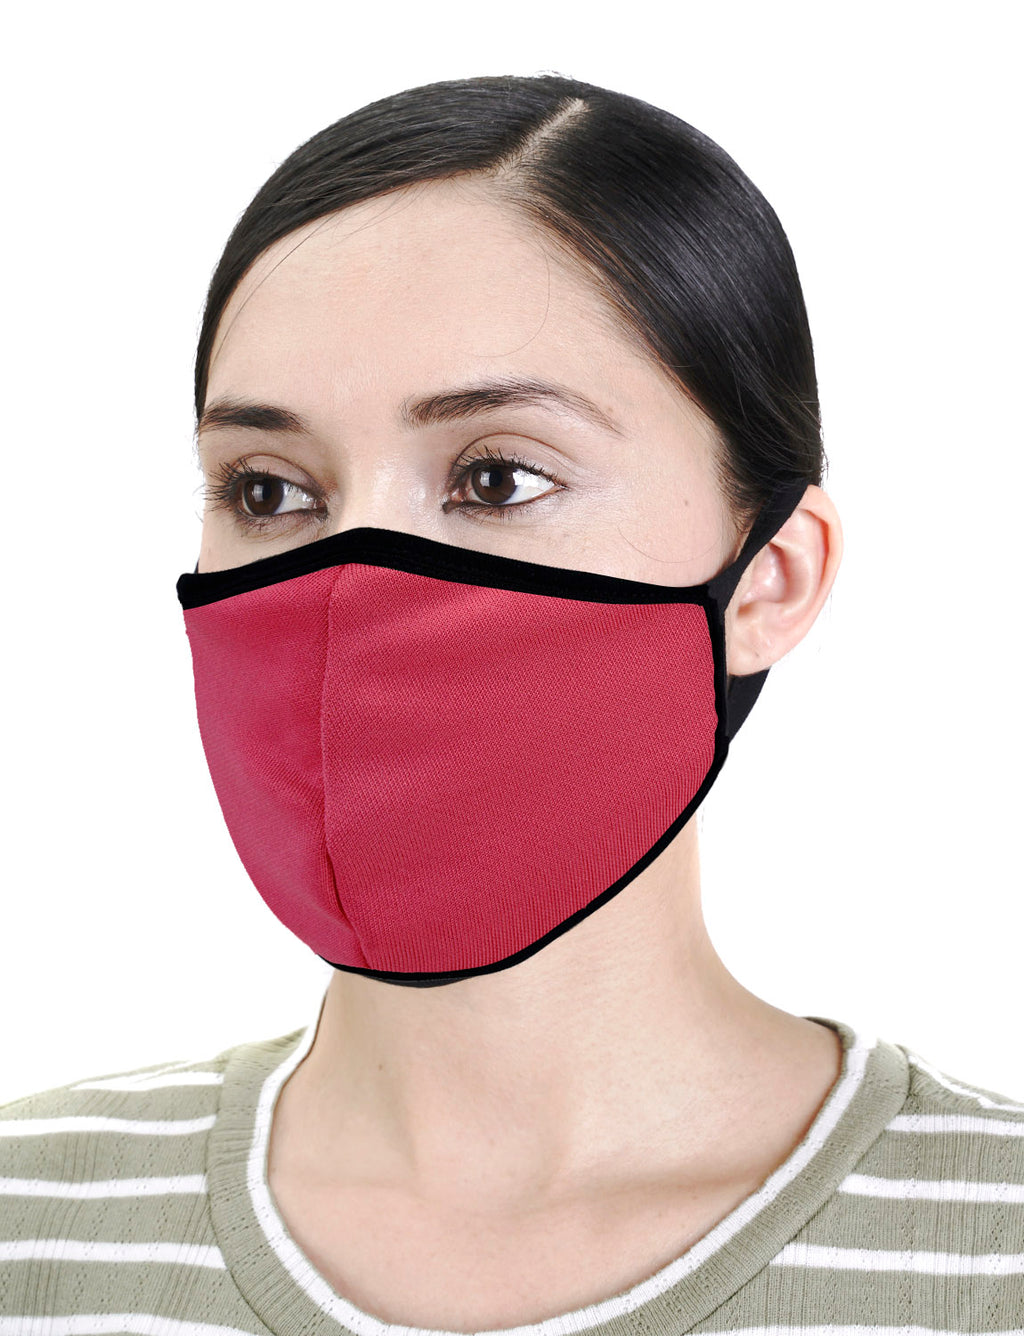 urban x apparel, urban x clothing, urbanxapparel, urbanxclothing, wholesale, women clothing, bohemian, free people, free spirit, young contemporary, fashion trend, fashion style, fashion 2019,RETAIL, Solid Poly Cotton Washable and Reusable Fashion Face Mask, URBAN X APPAREL